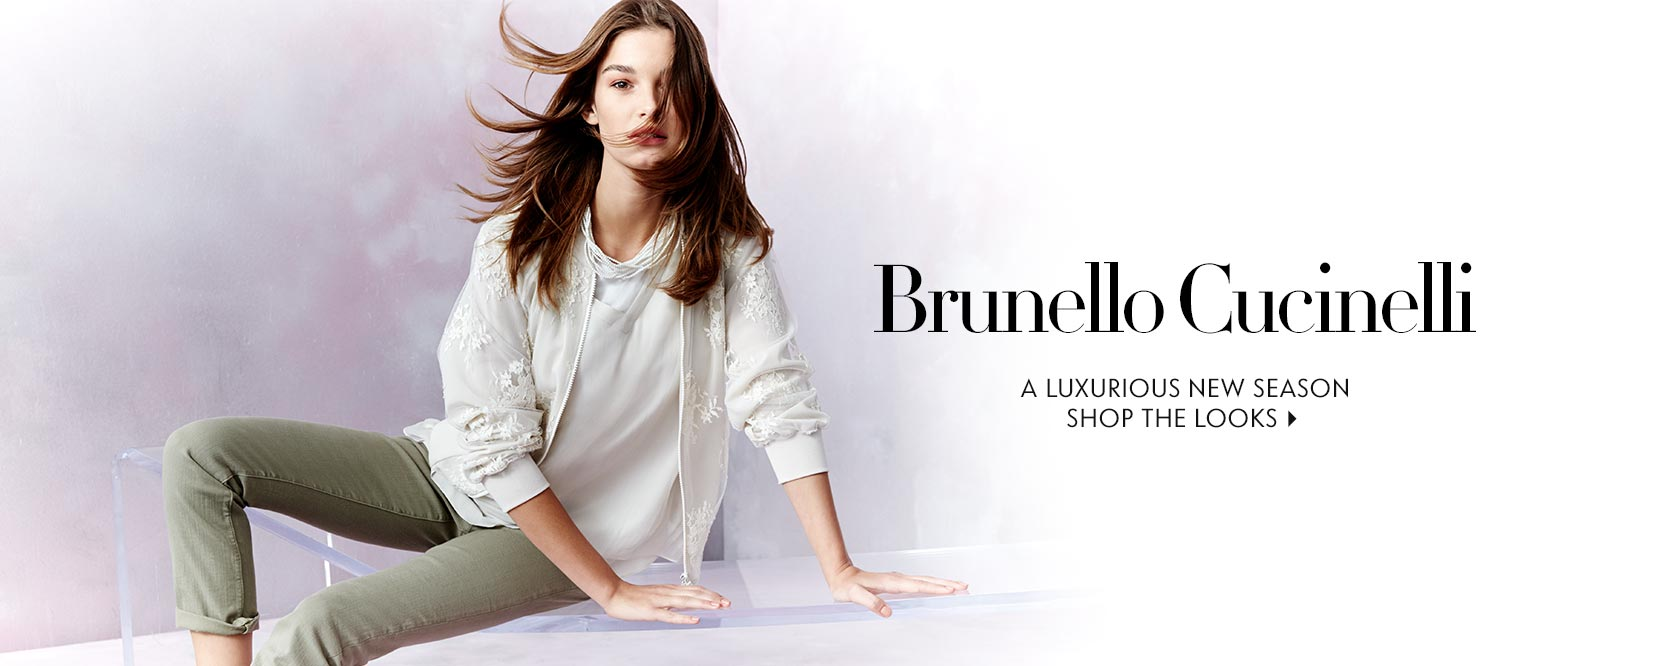 Shop the New Bunello Cucinelli Spring Collection